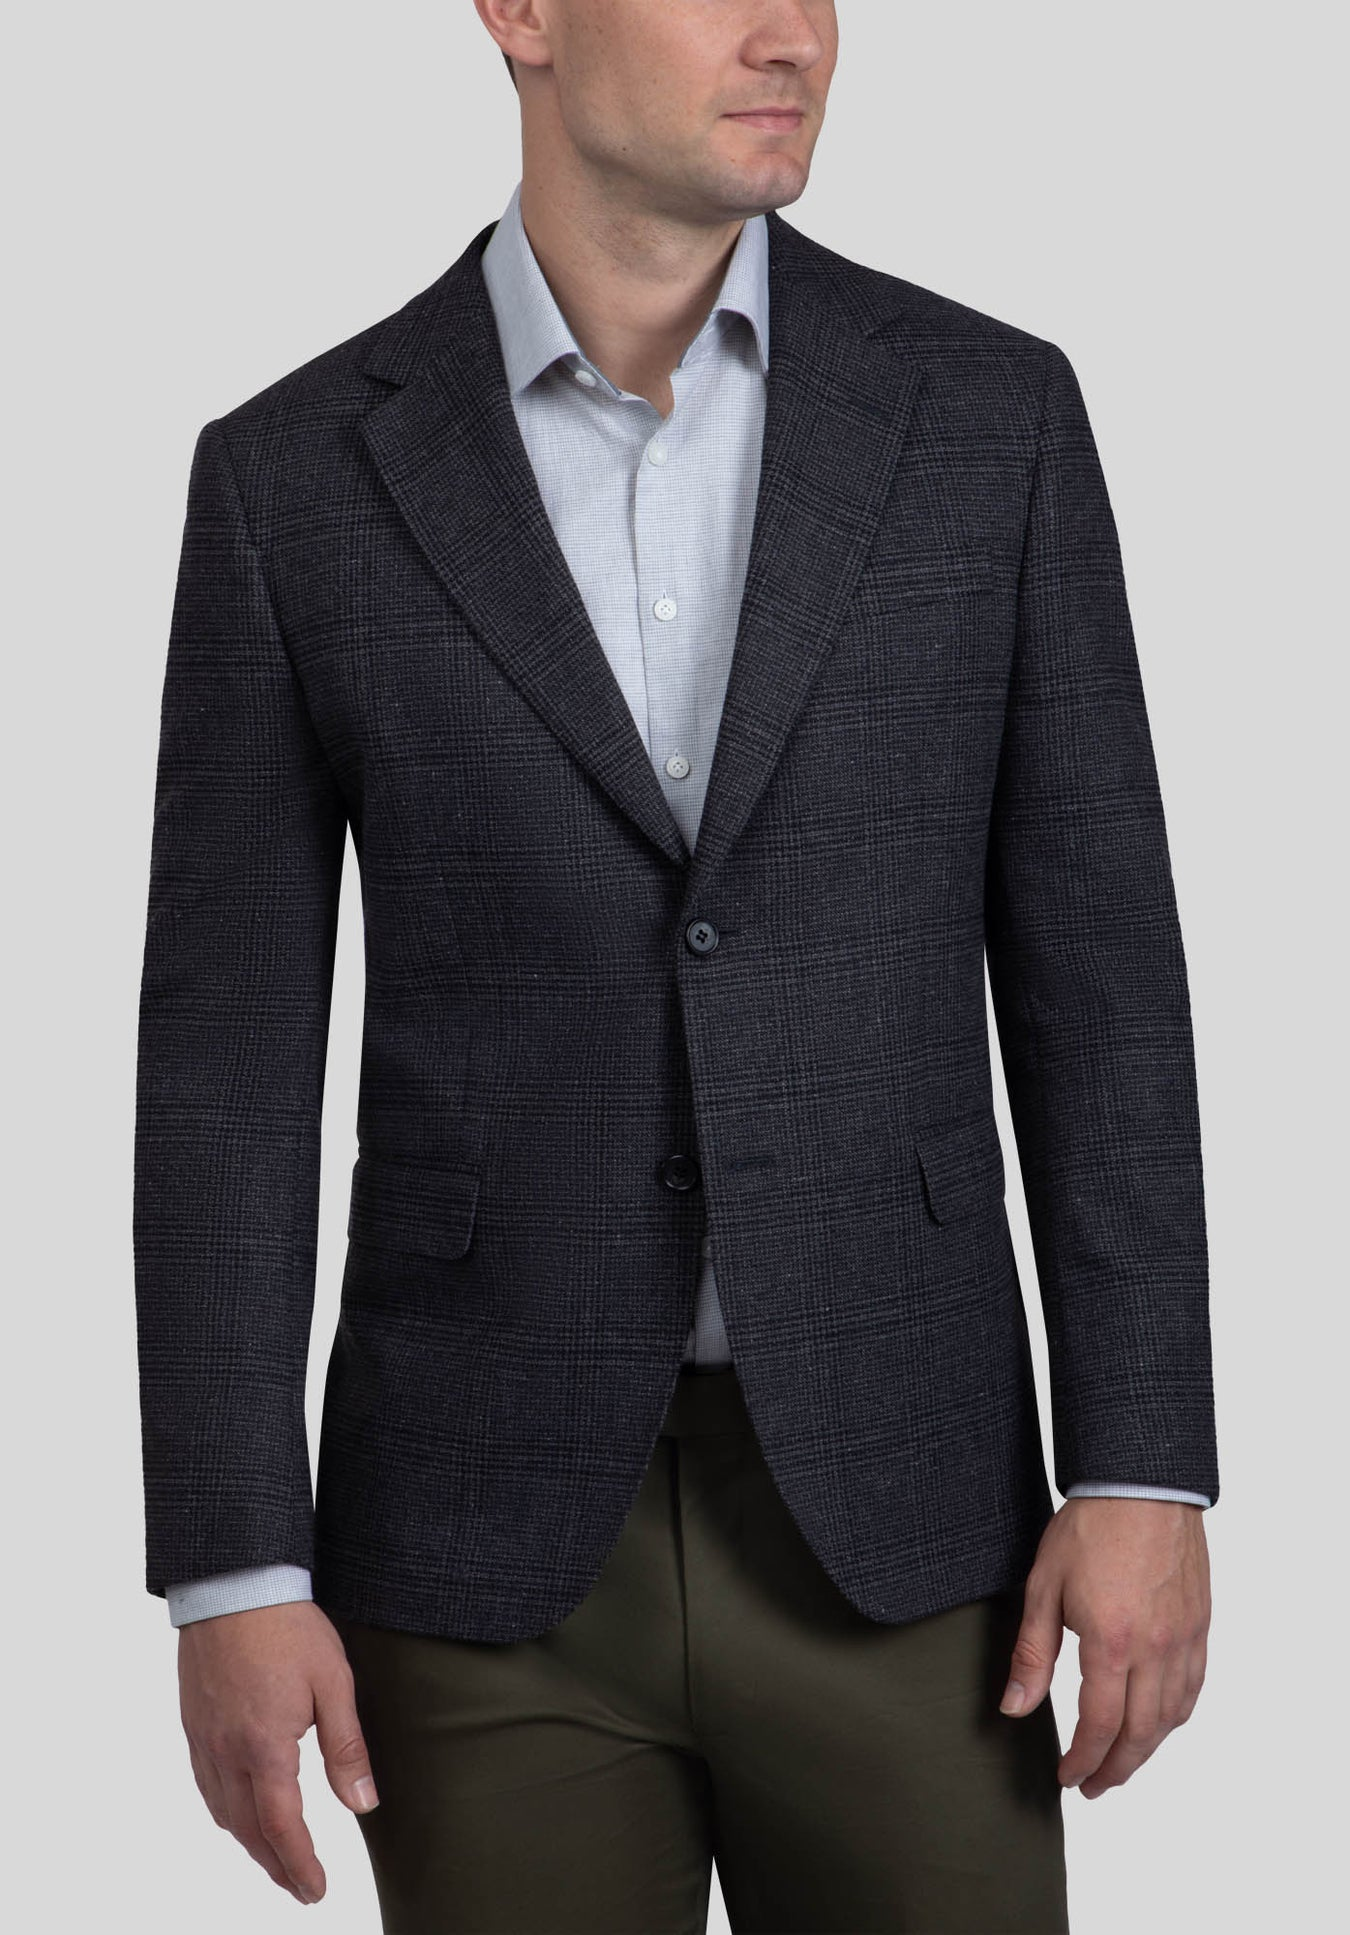 MARCEL SPORTS JACKET FAJ796 - Dark Grey